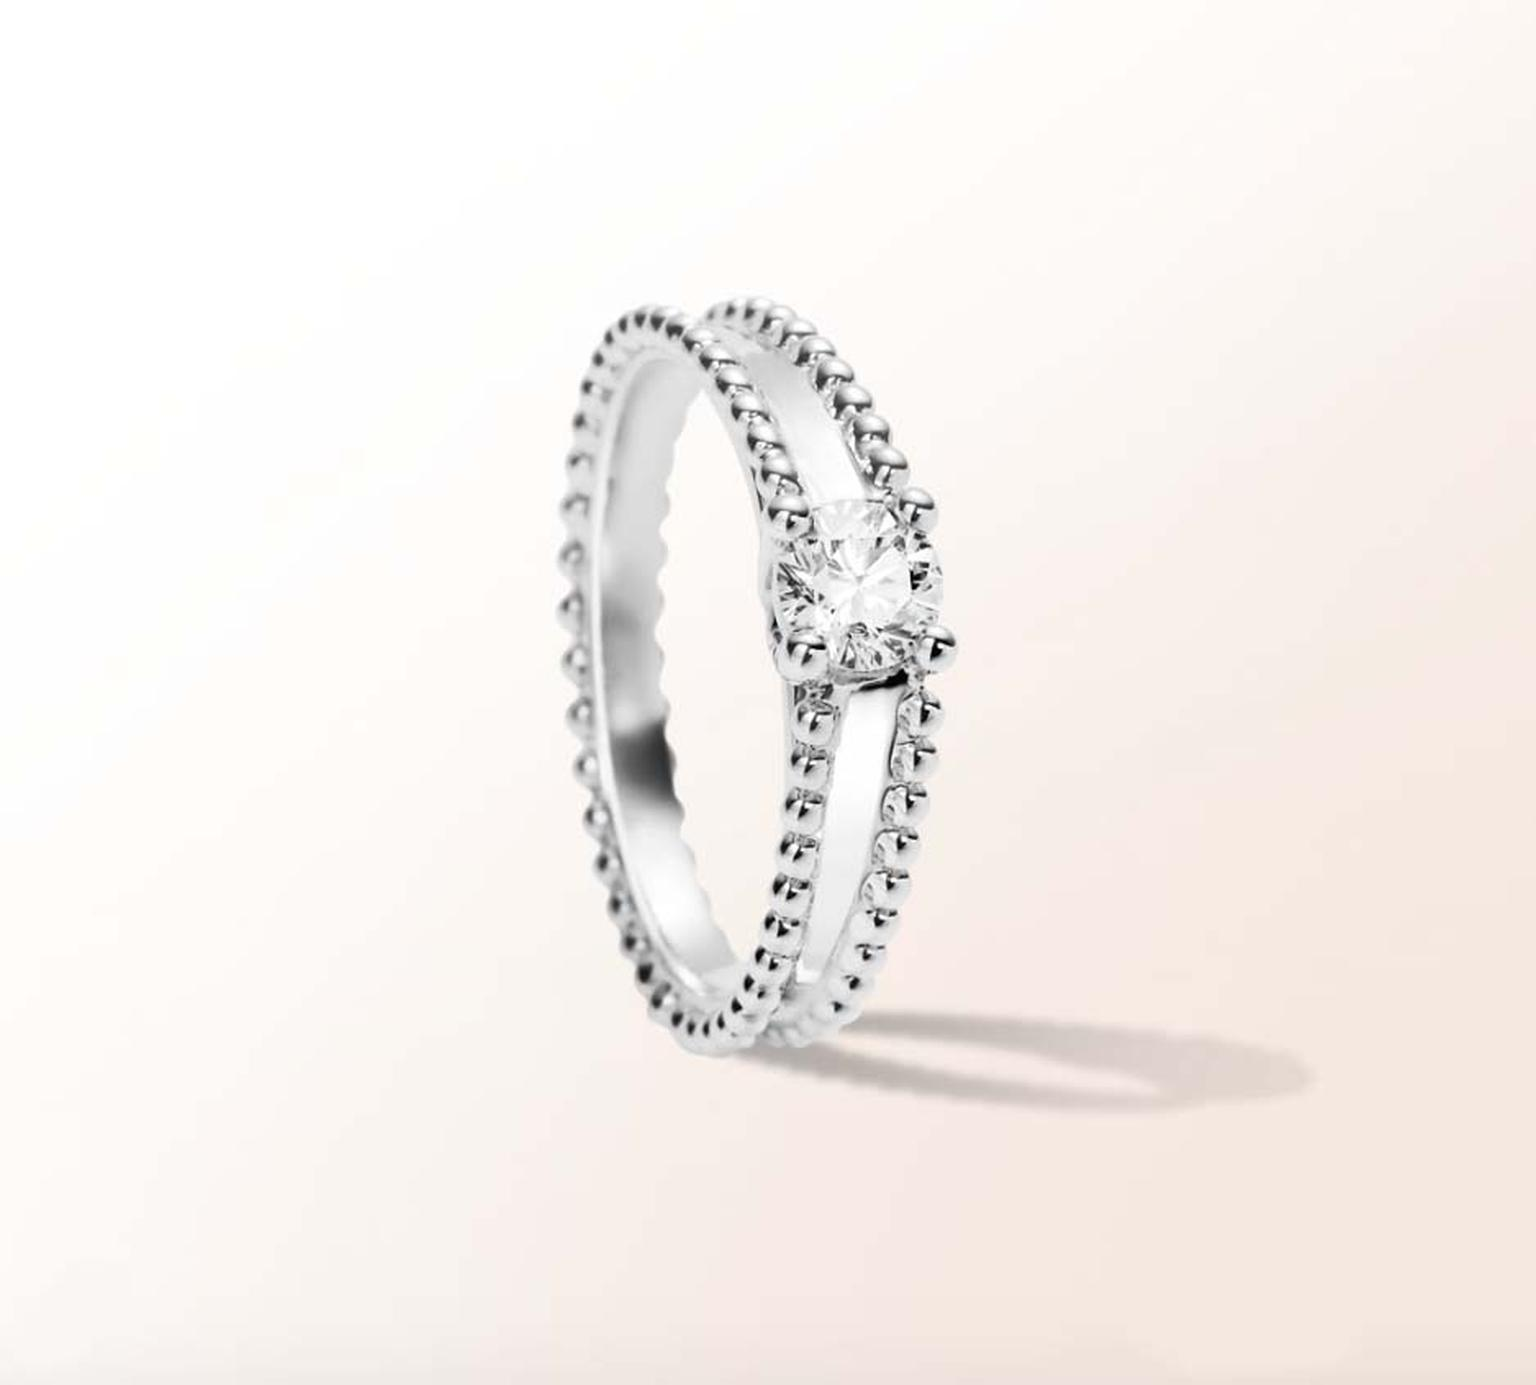 Van Cleef & Arpels jewellery Estelle diamond engagement ring with beaded platinum setting.